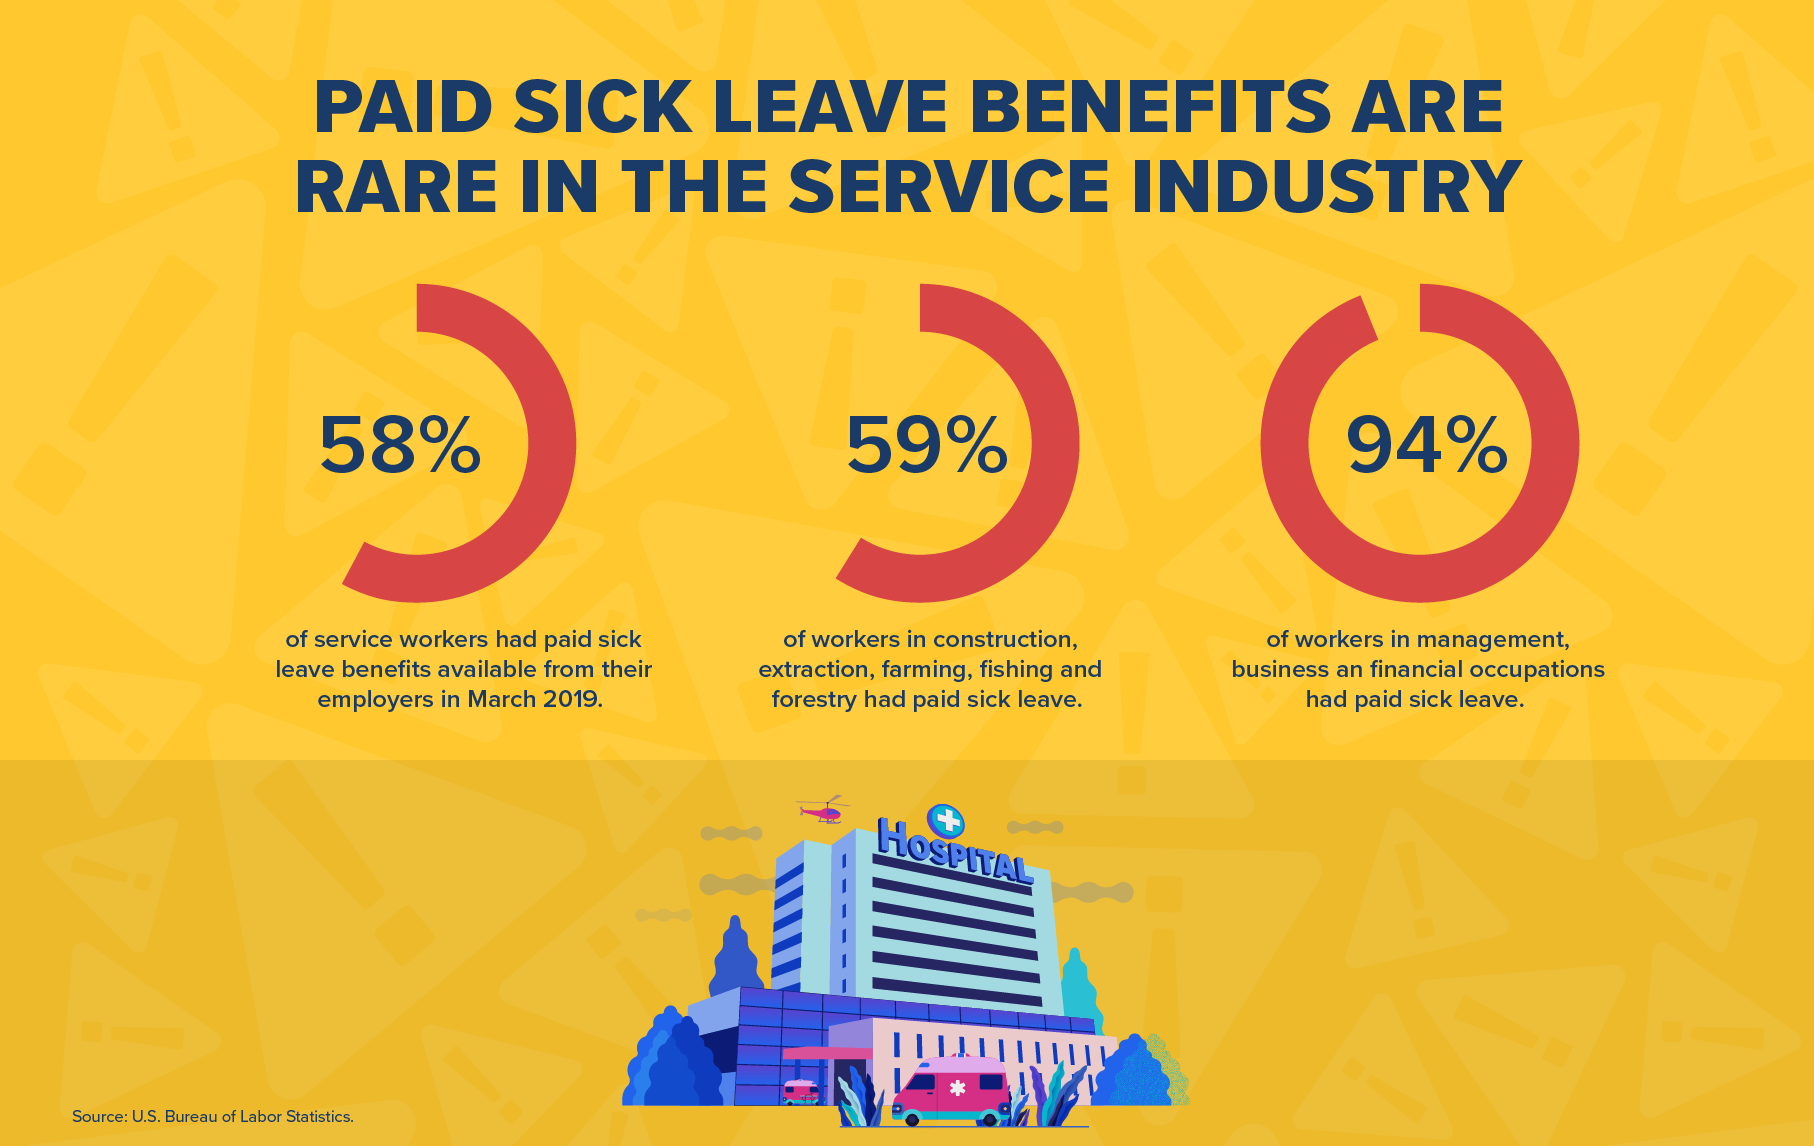 Paid Sick Leave Benefits Are Rare In The Service Industry